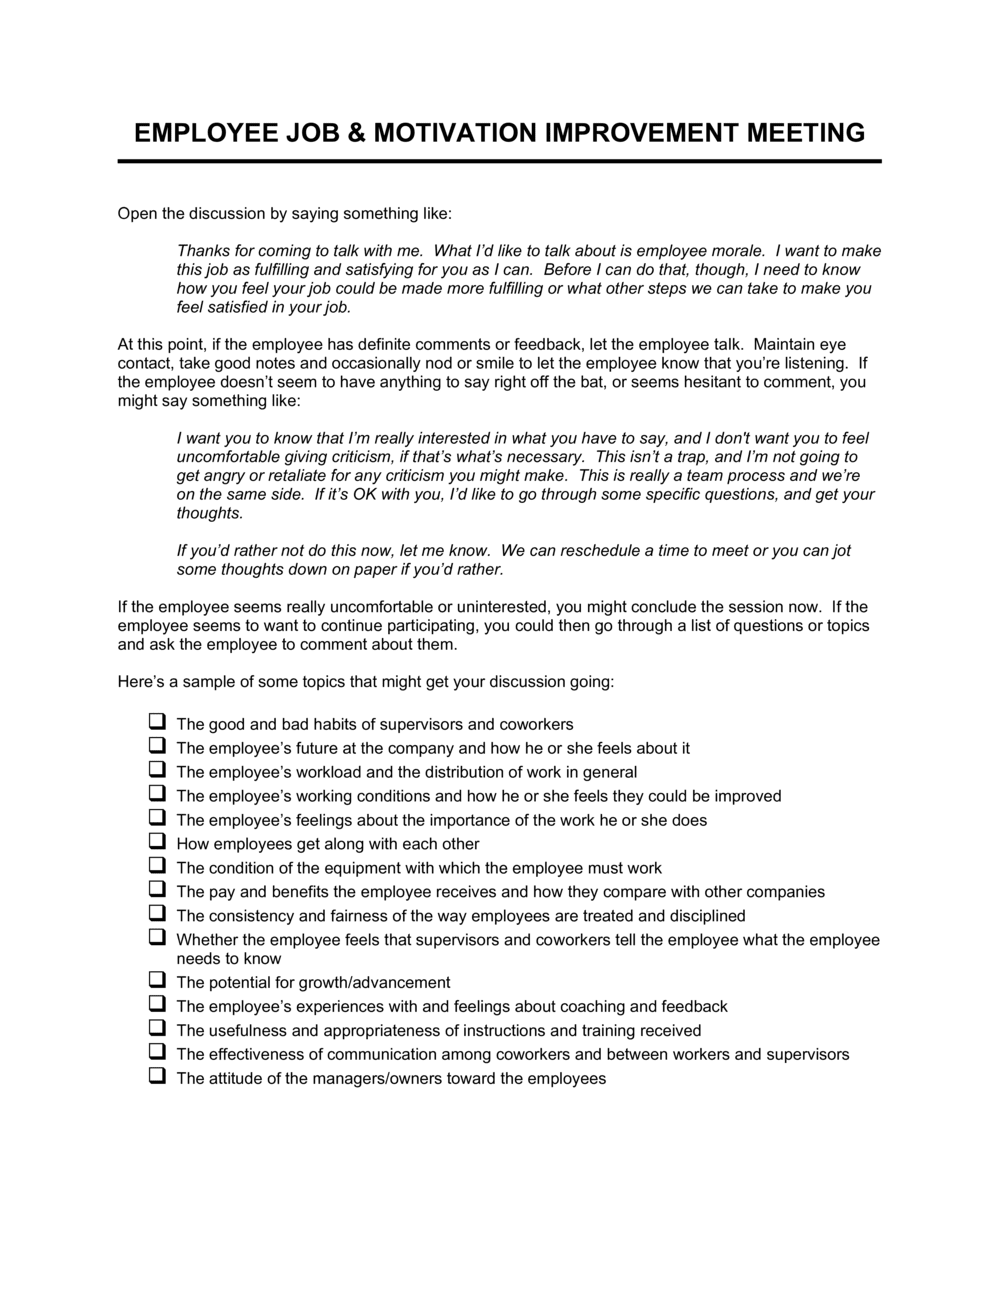 Business-in-a-Box's Employee Job and Motivation Improvement Meeting Template